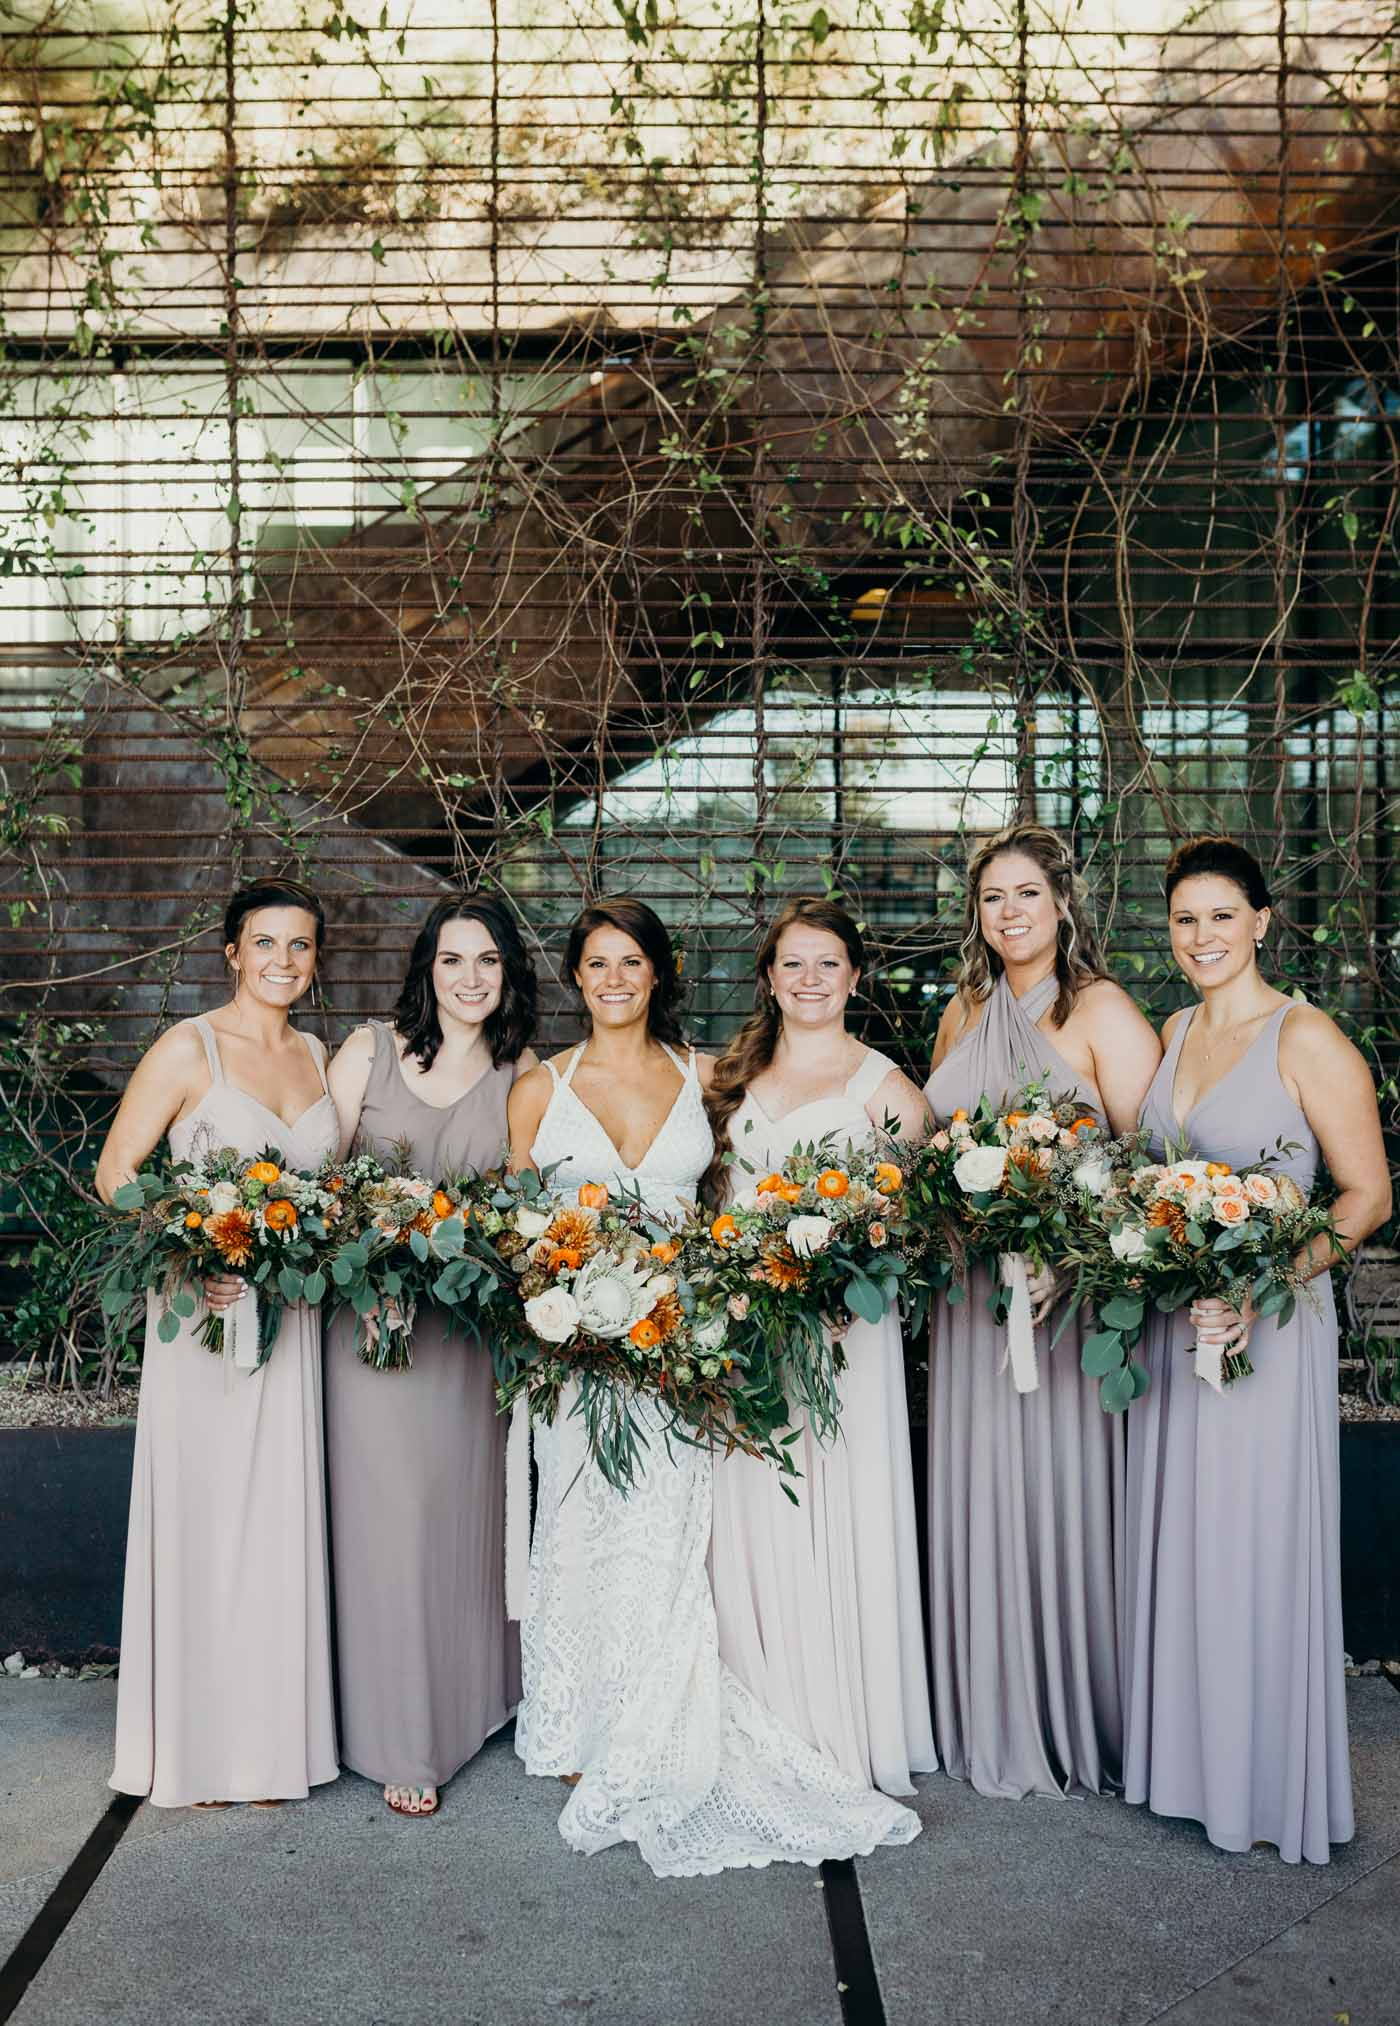 The bride and bridesmaids. The bride has a lace boho dress and the bridesmaids are all wearing different shares of tan. They are all holding flowers with greenery in it.